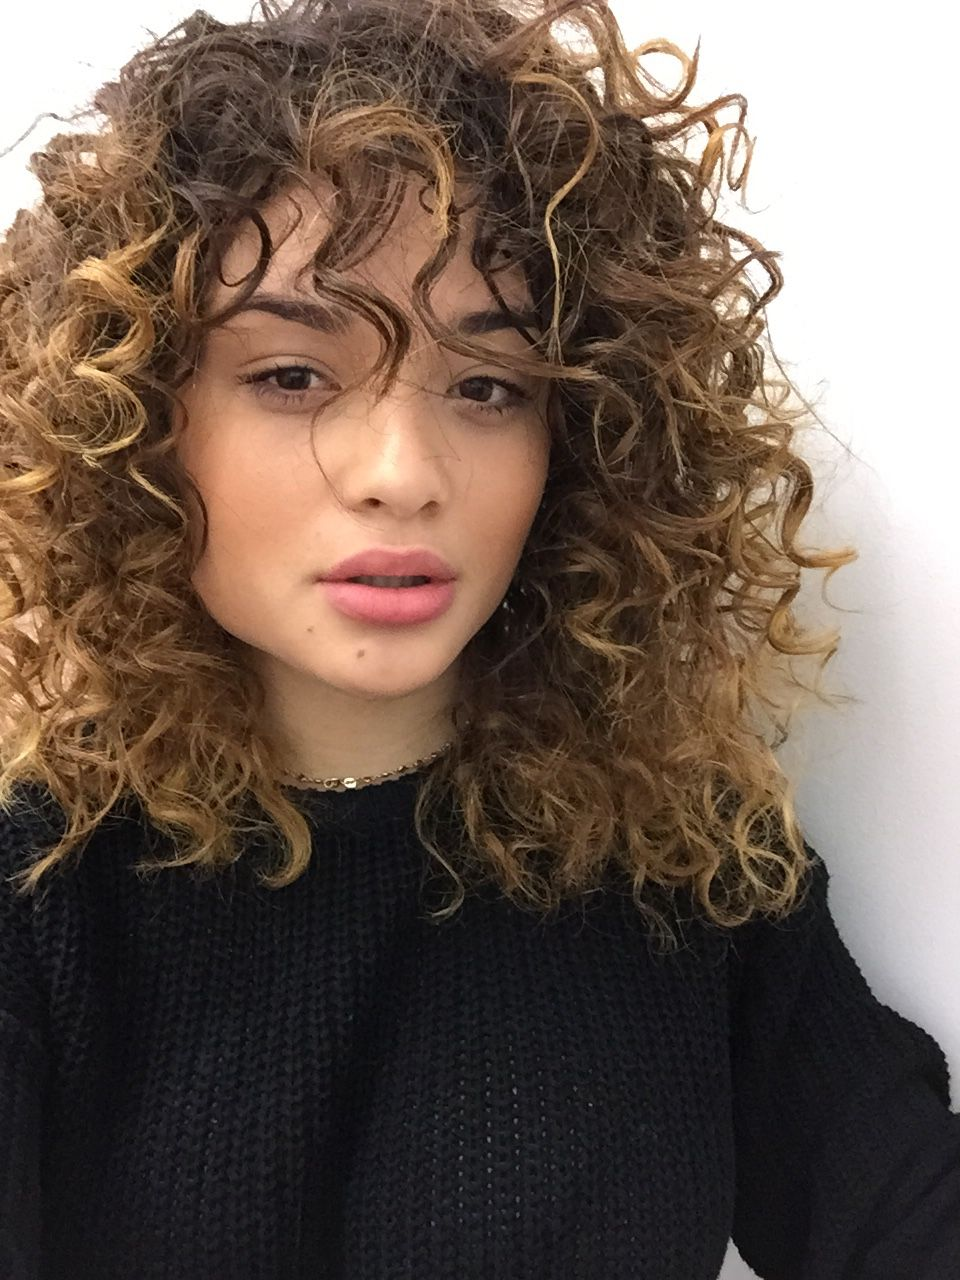 50 Cute Trendy Curly Hairstyles With Bangs In 2018 Funky Curly Hair Curly Hair Styles Hair Styles